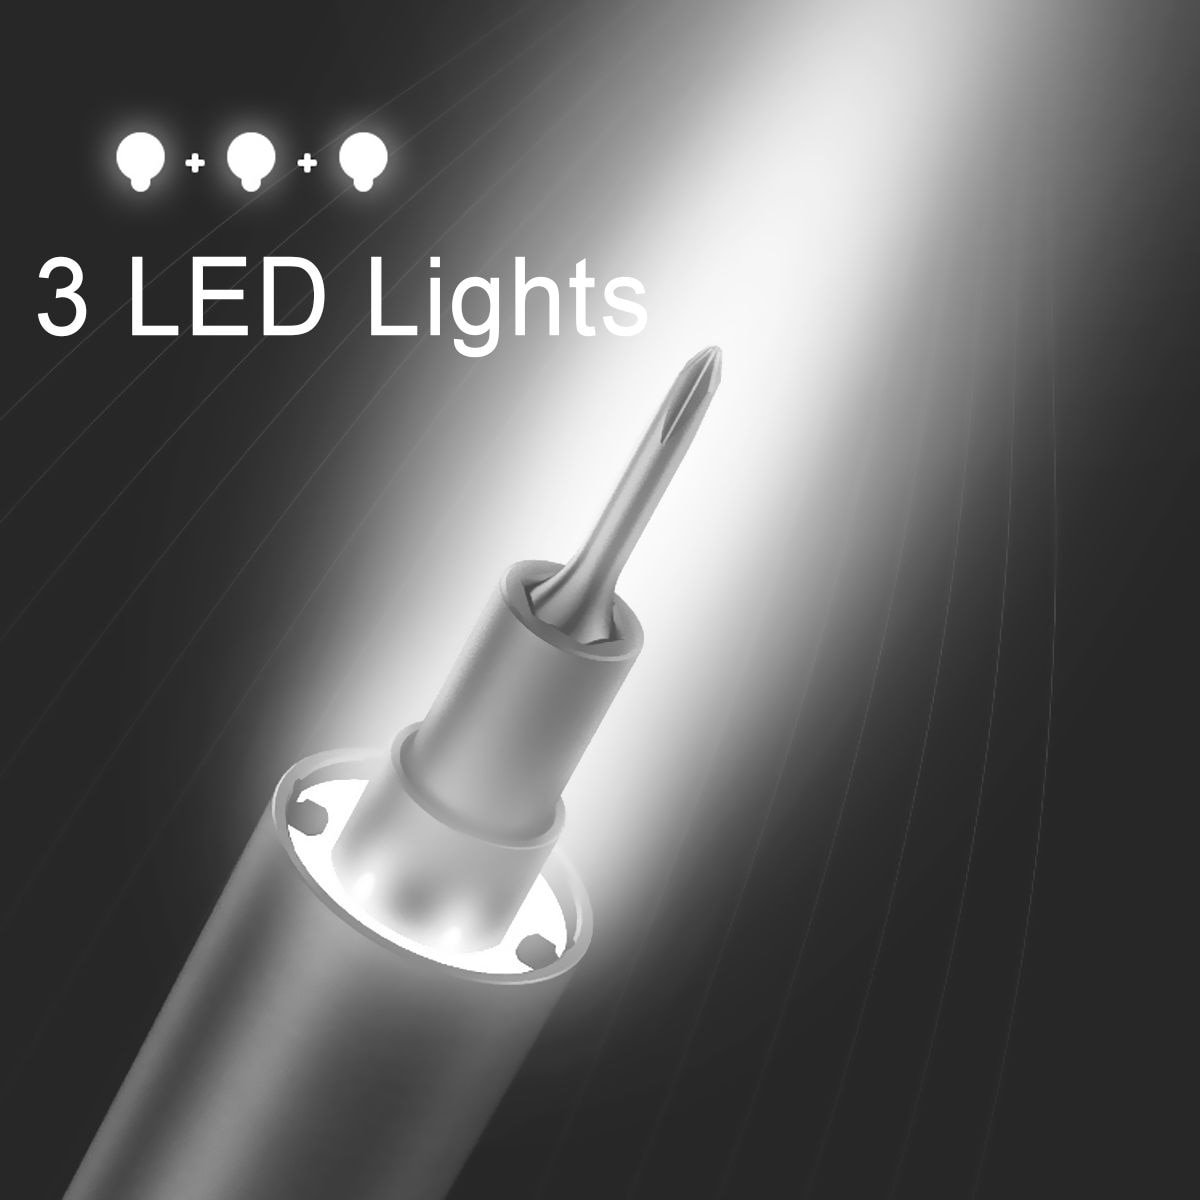 For Wowstick 1F Pro Mini Electric Screwdriver Rechargeable Cordless Power Screw Driver Kit LED Light Lithium Battery Operated